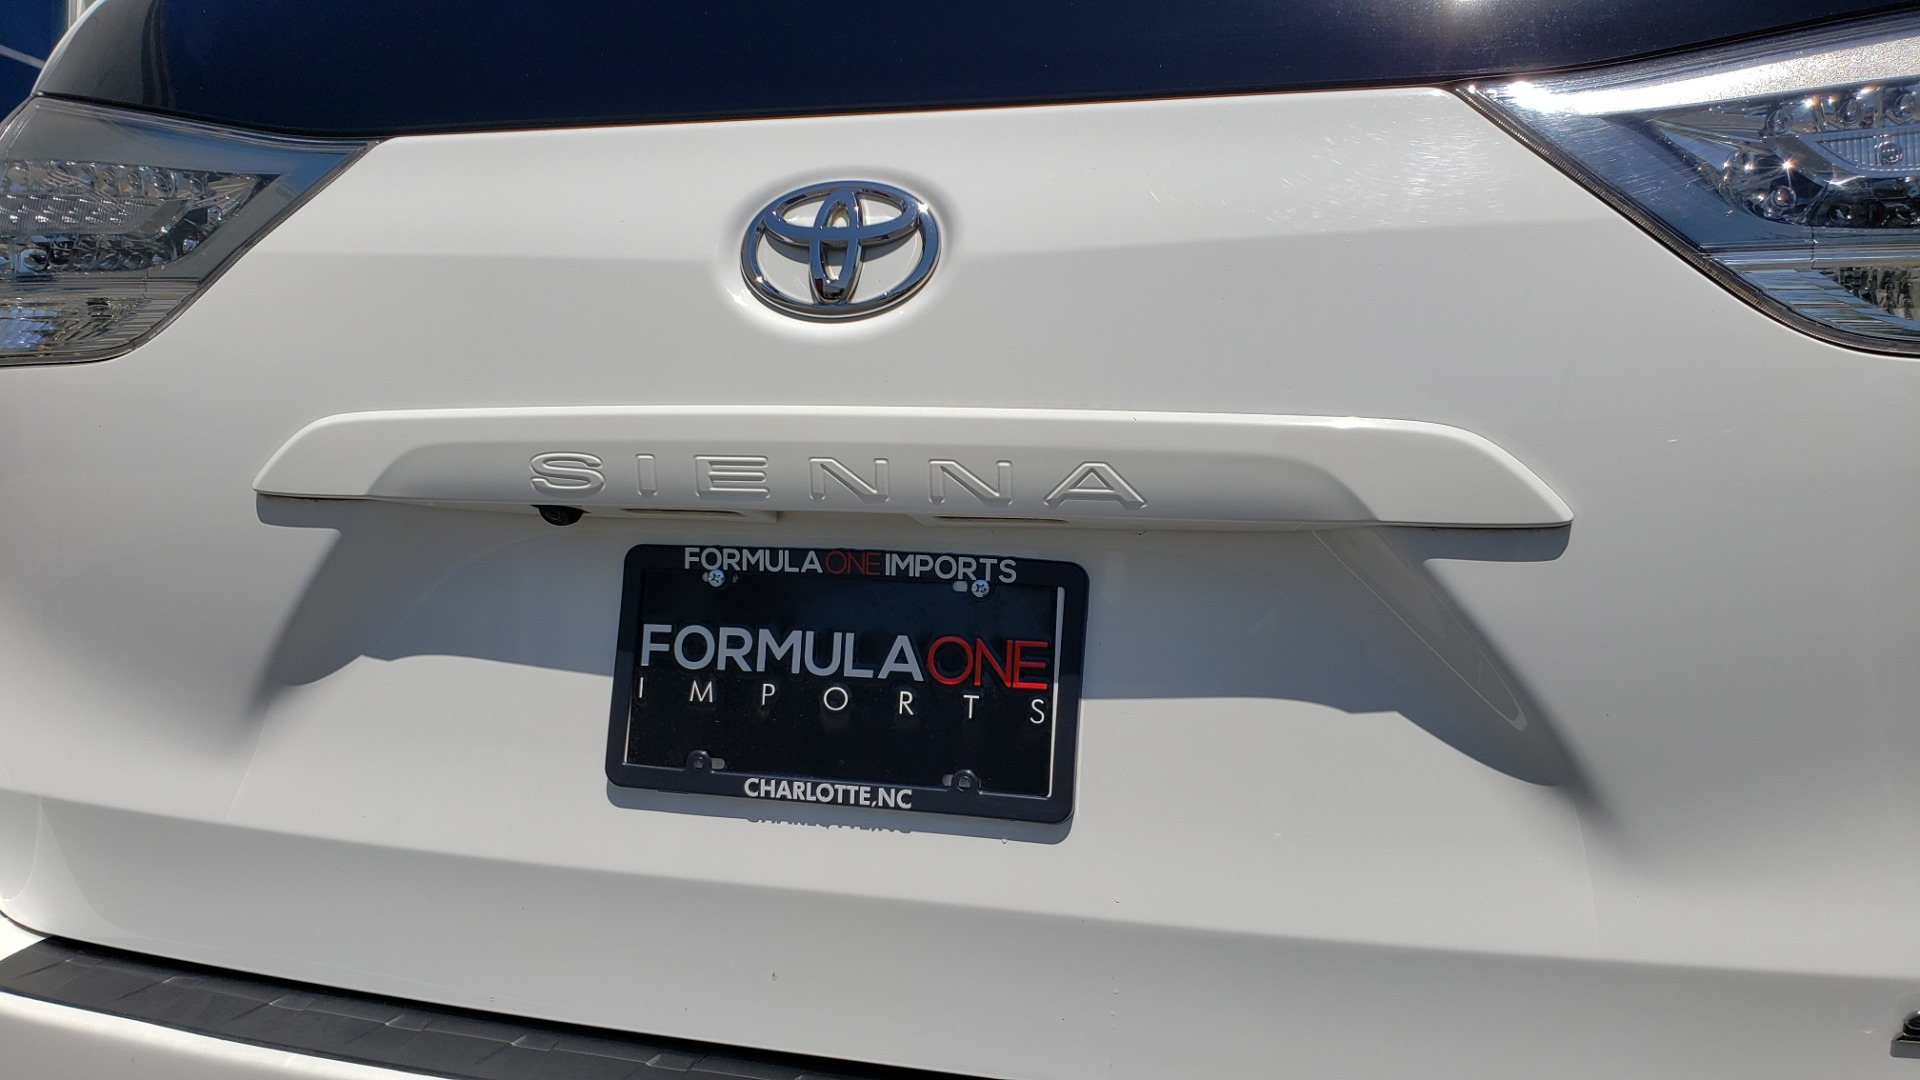 Used 2015 Toyota SIENNA SE 3.5L / FWD / 3-ROWS / 8-PASS / SUNROOF / DVD / REARVIEW for sale $21,995 at Formula Imports in Charlotte NC 28227 32